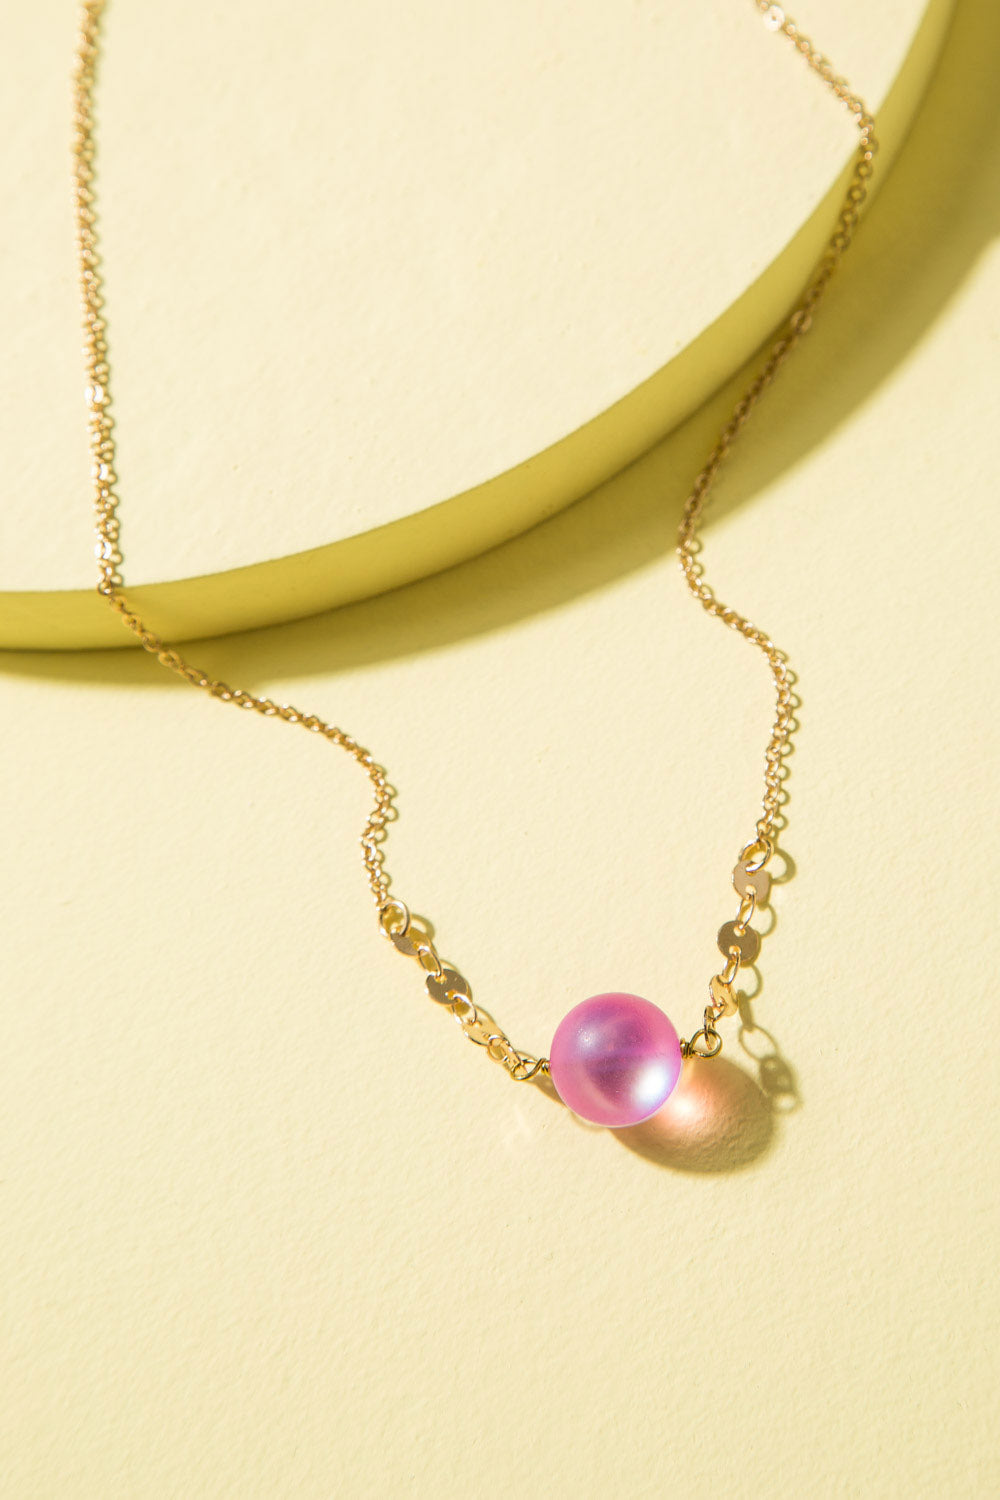 Type 1 Pinky Promise Necklace